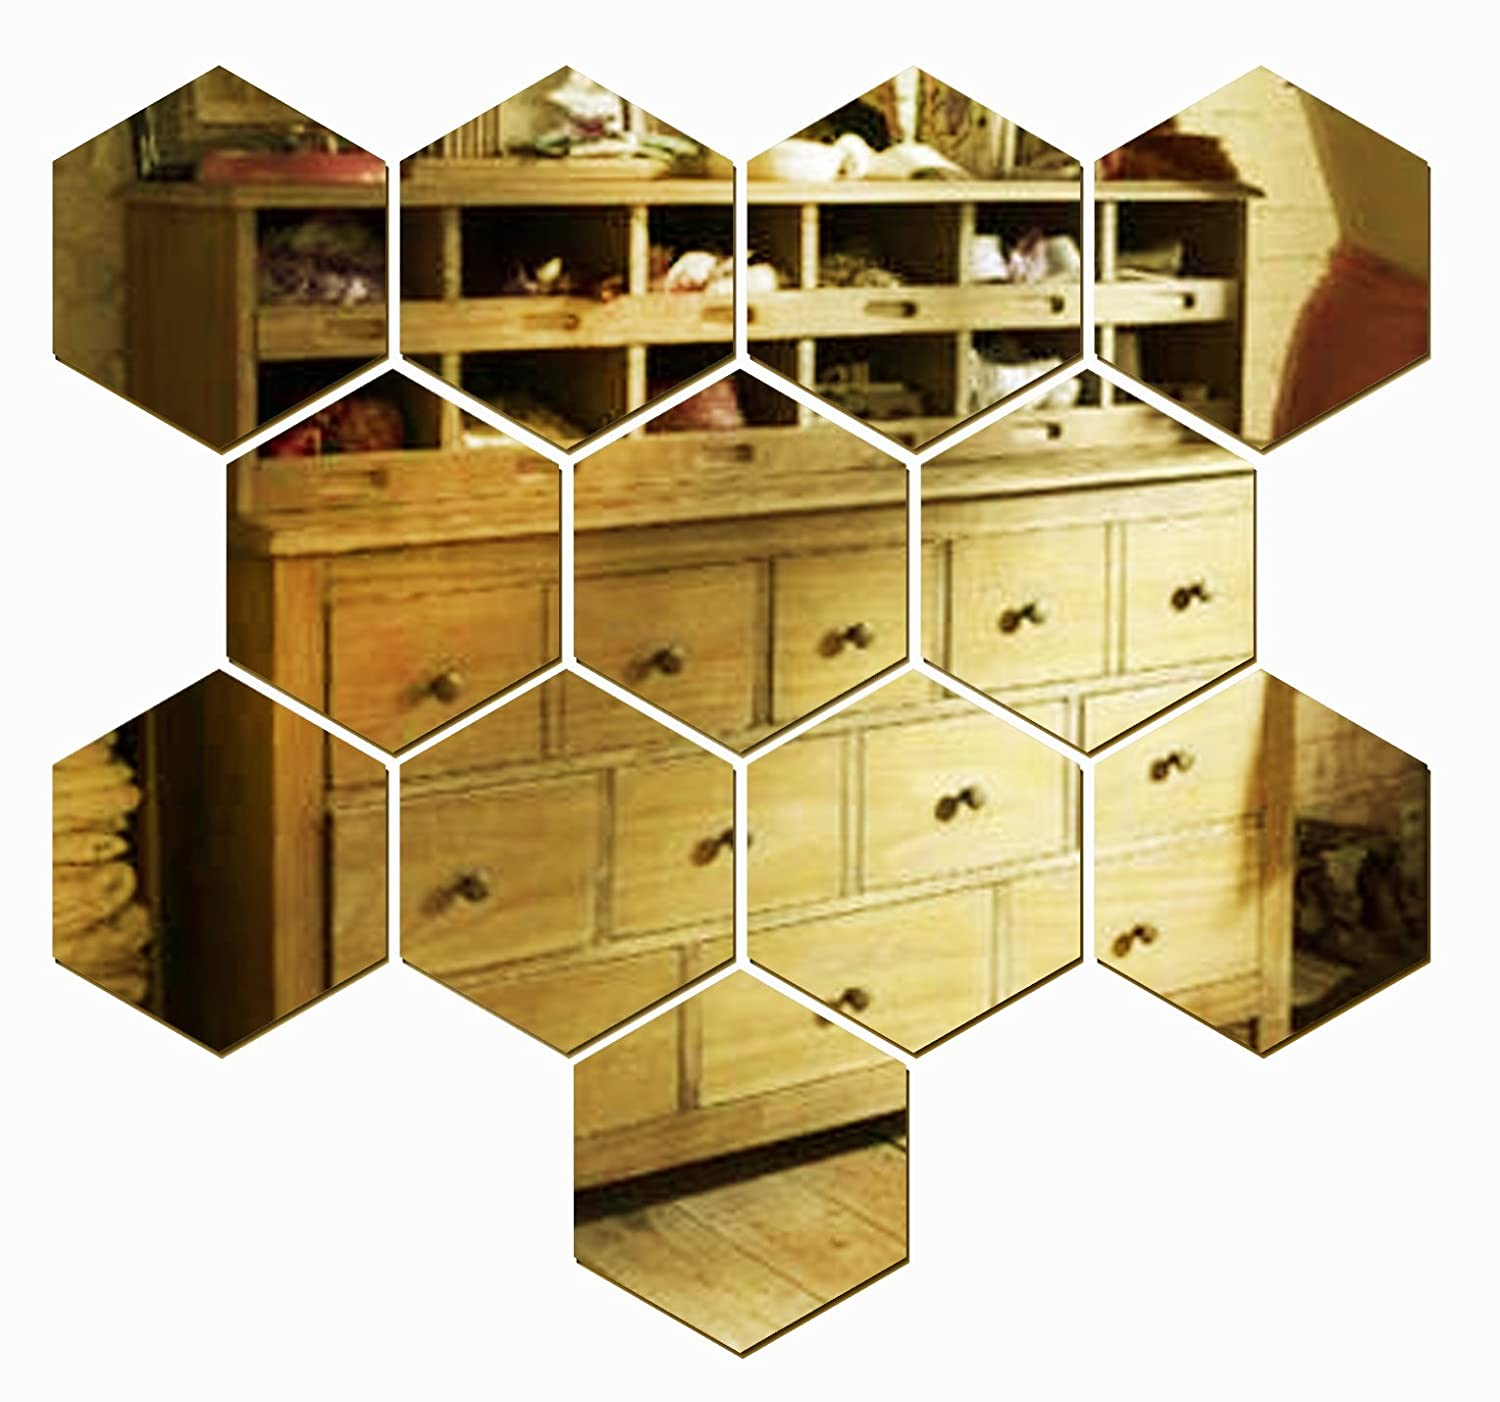 Amazon.com: JustNile Decorative Hexagonal Wall Stickers - 12pc ...